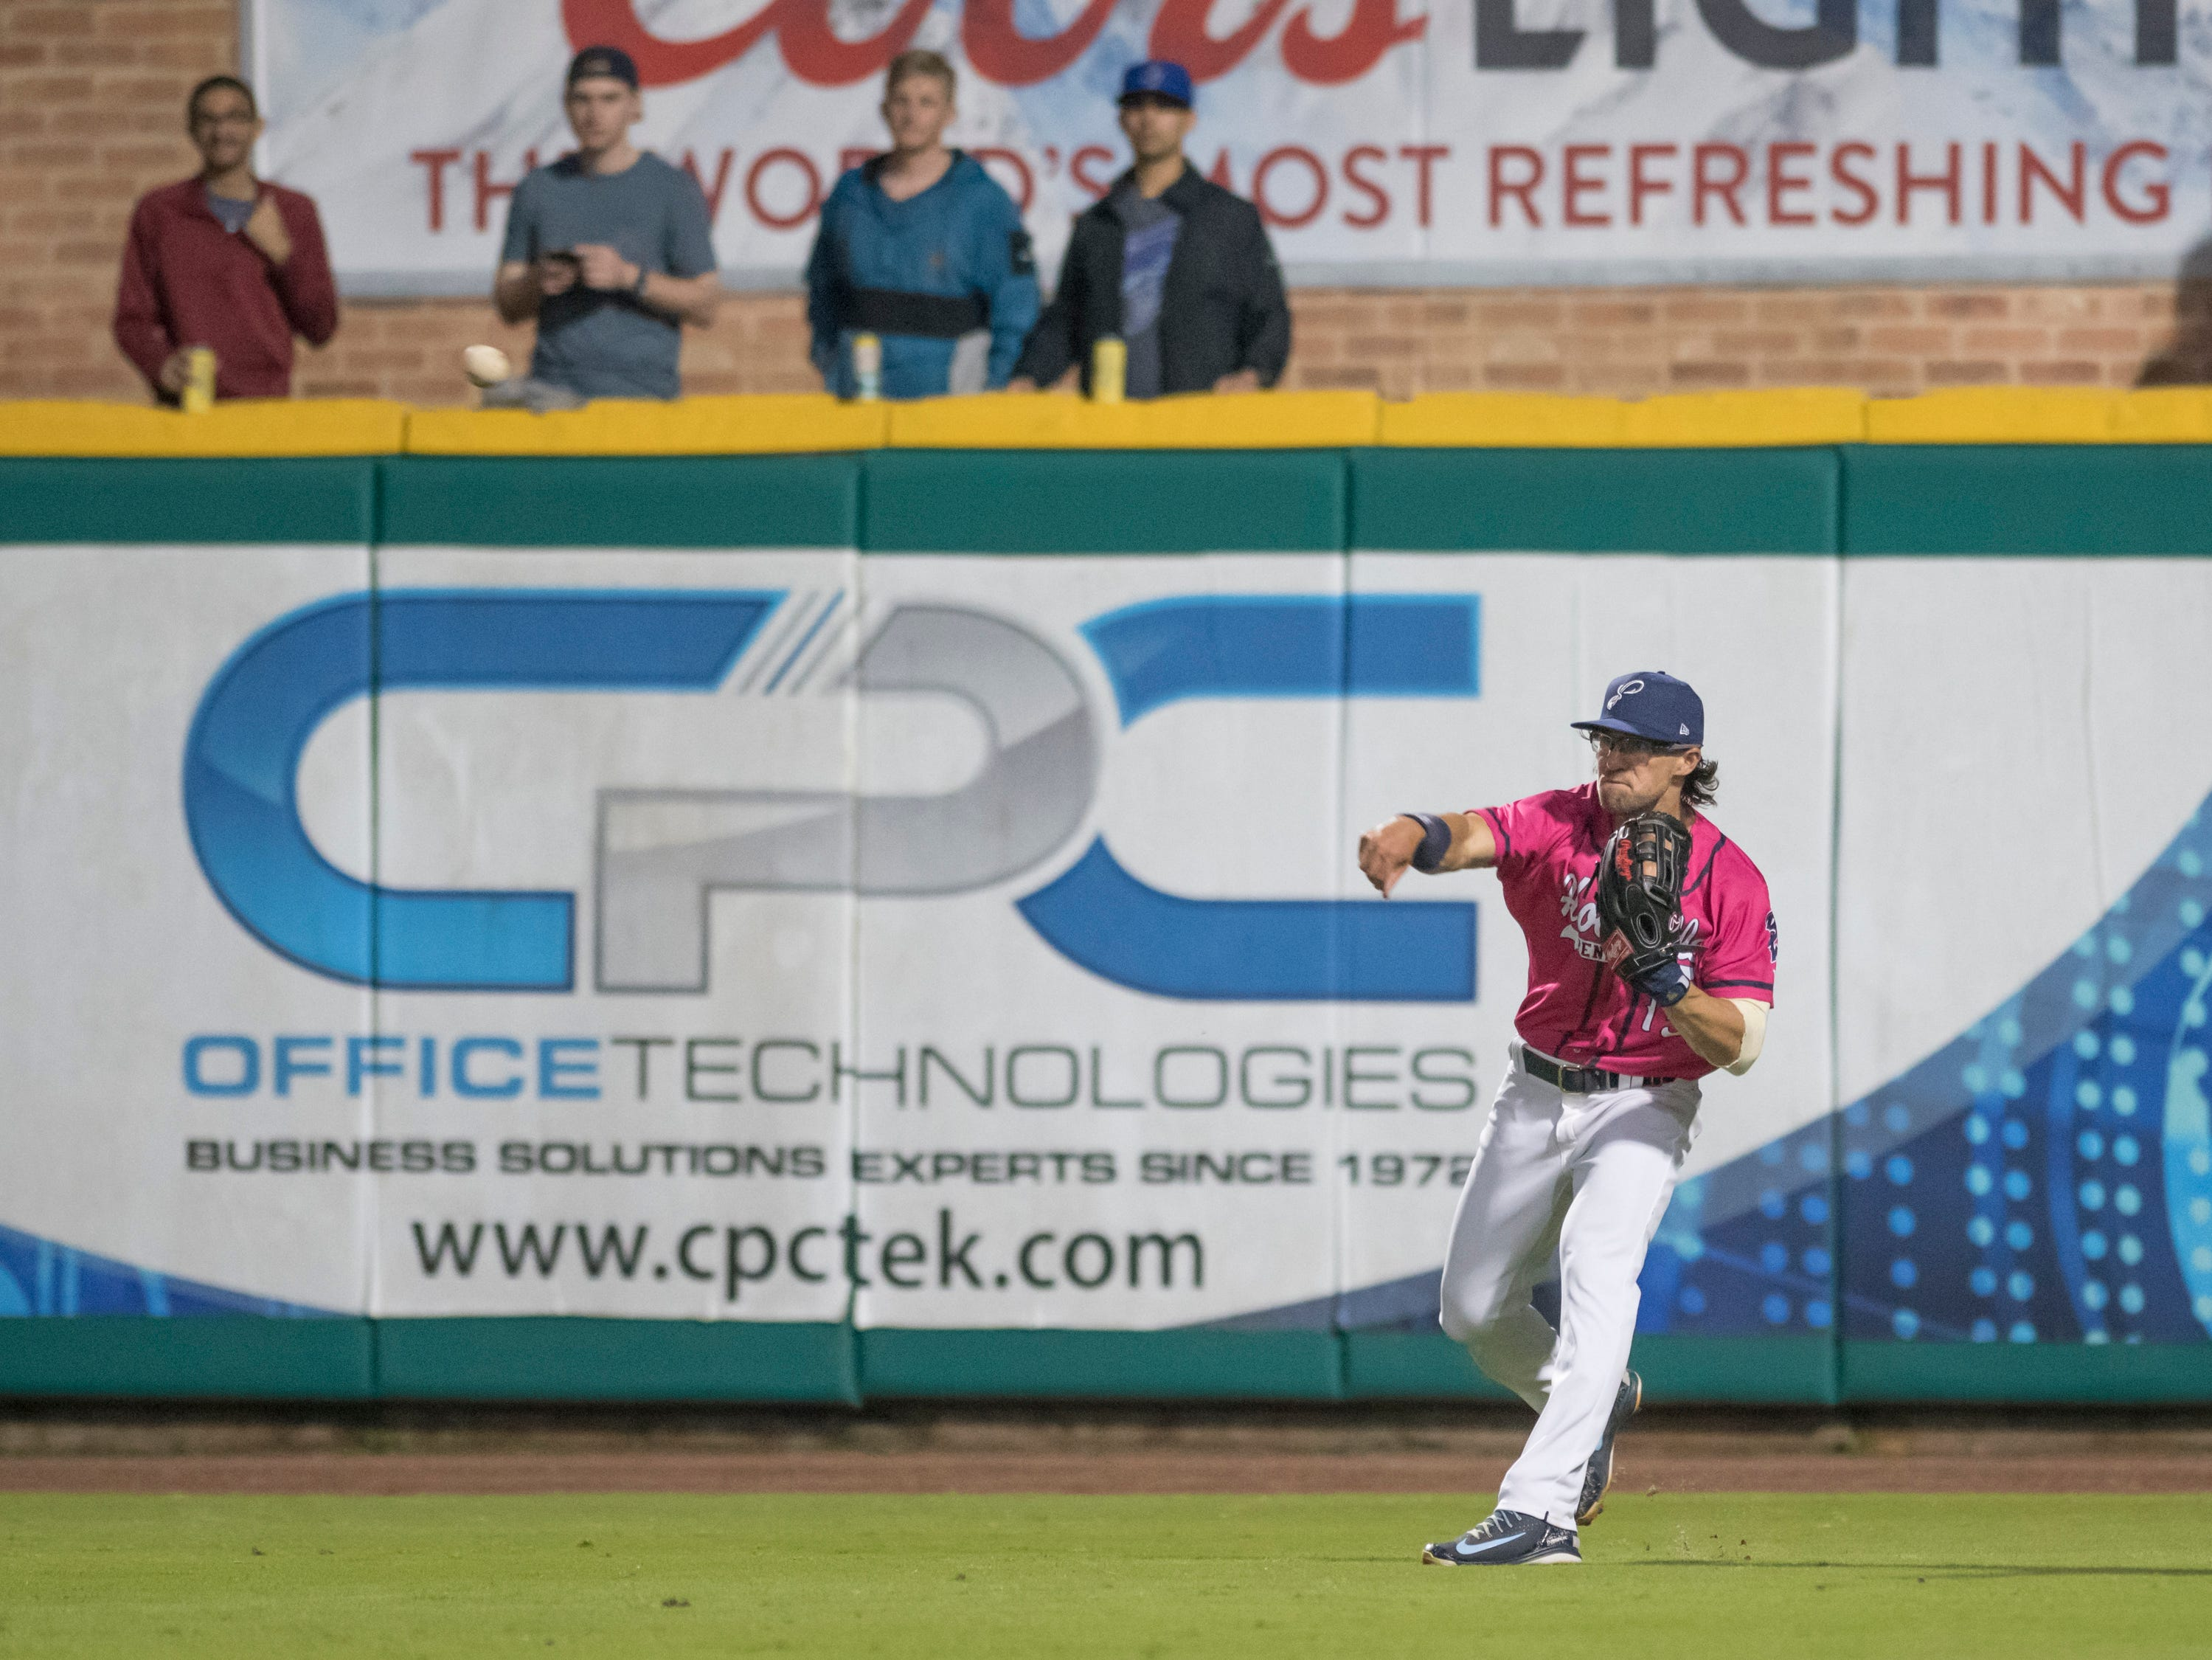 Drew Maggi (15) throws the ball back into the infield during the Jacksonville Jumbo Shrimp vs Pensacola Blue Wahoos baseball game in Pensacola on Friday, April 12, 2019.